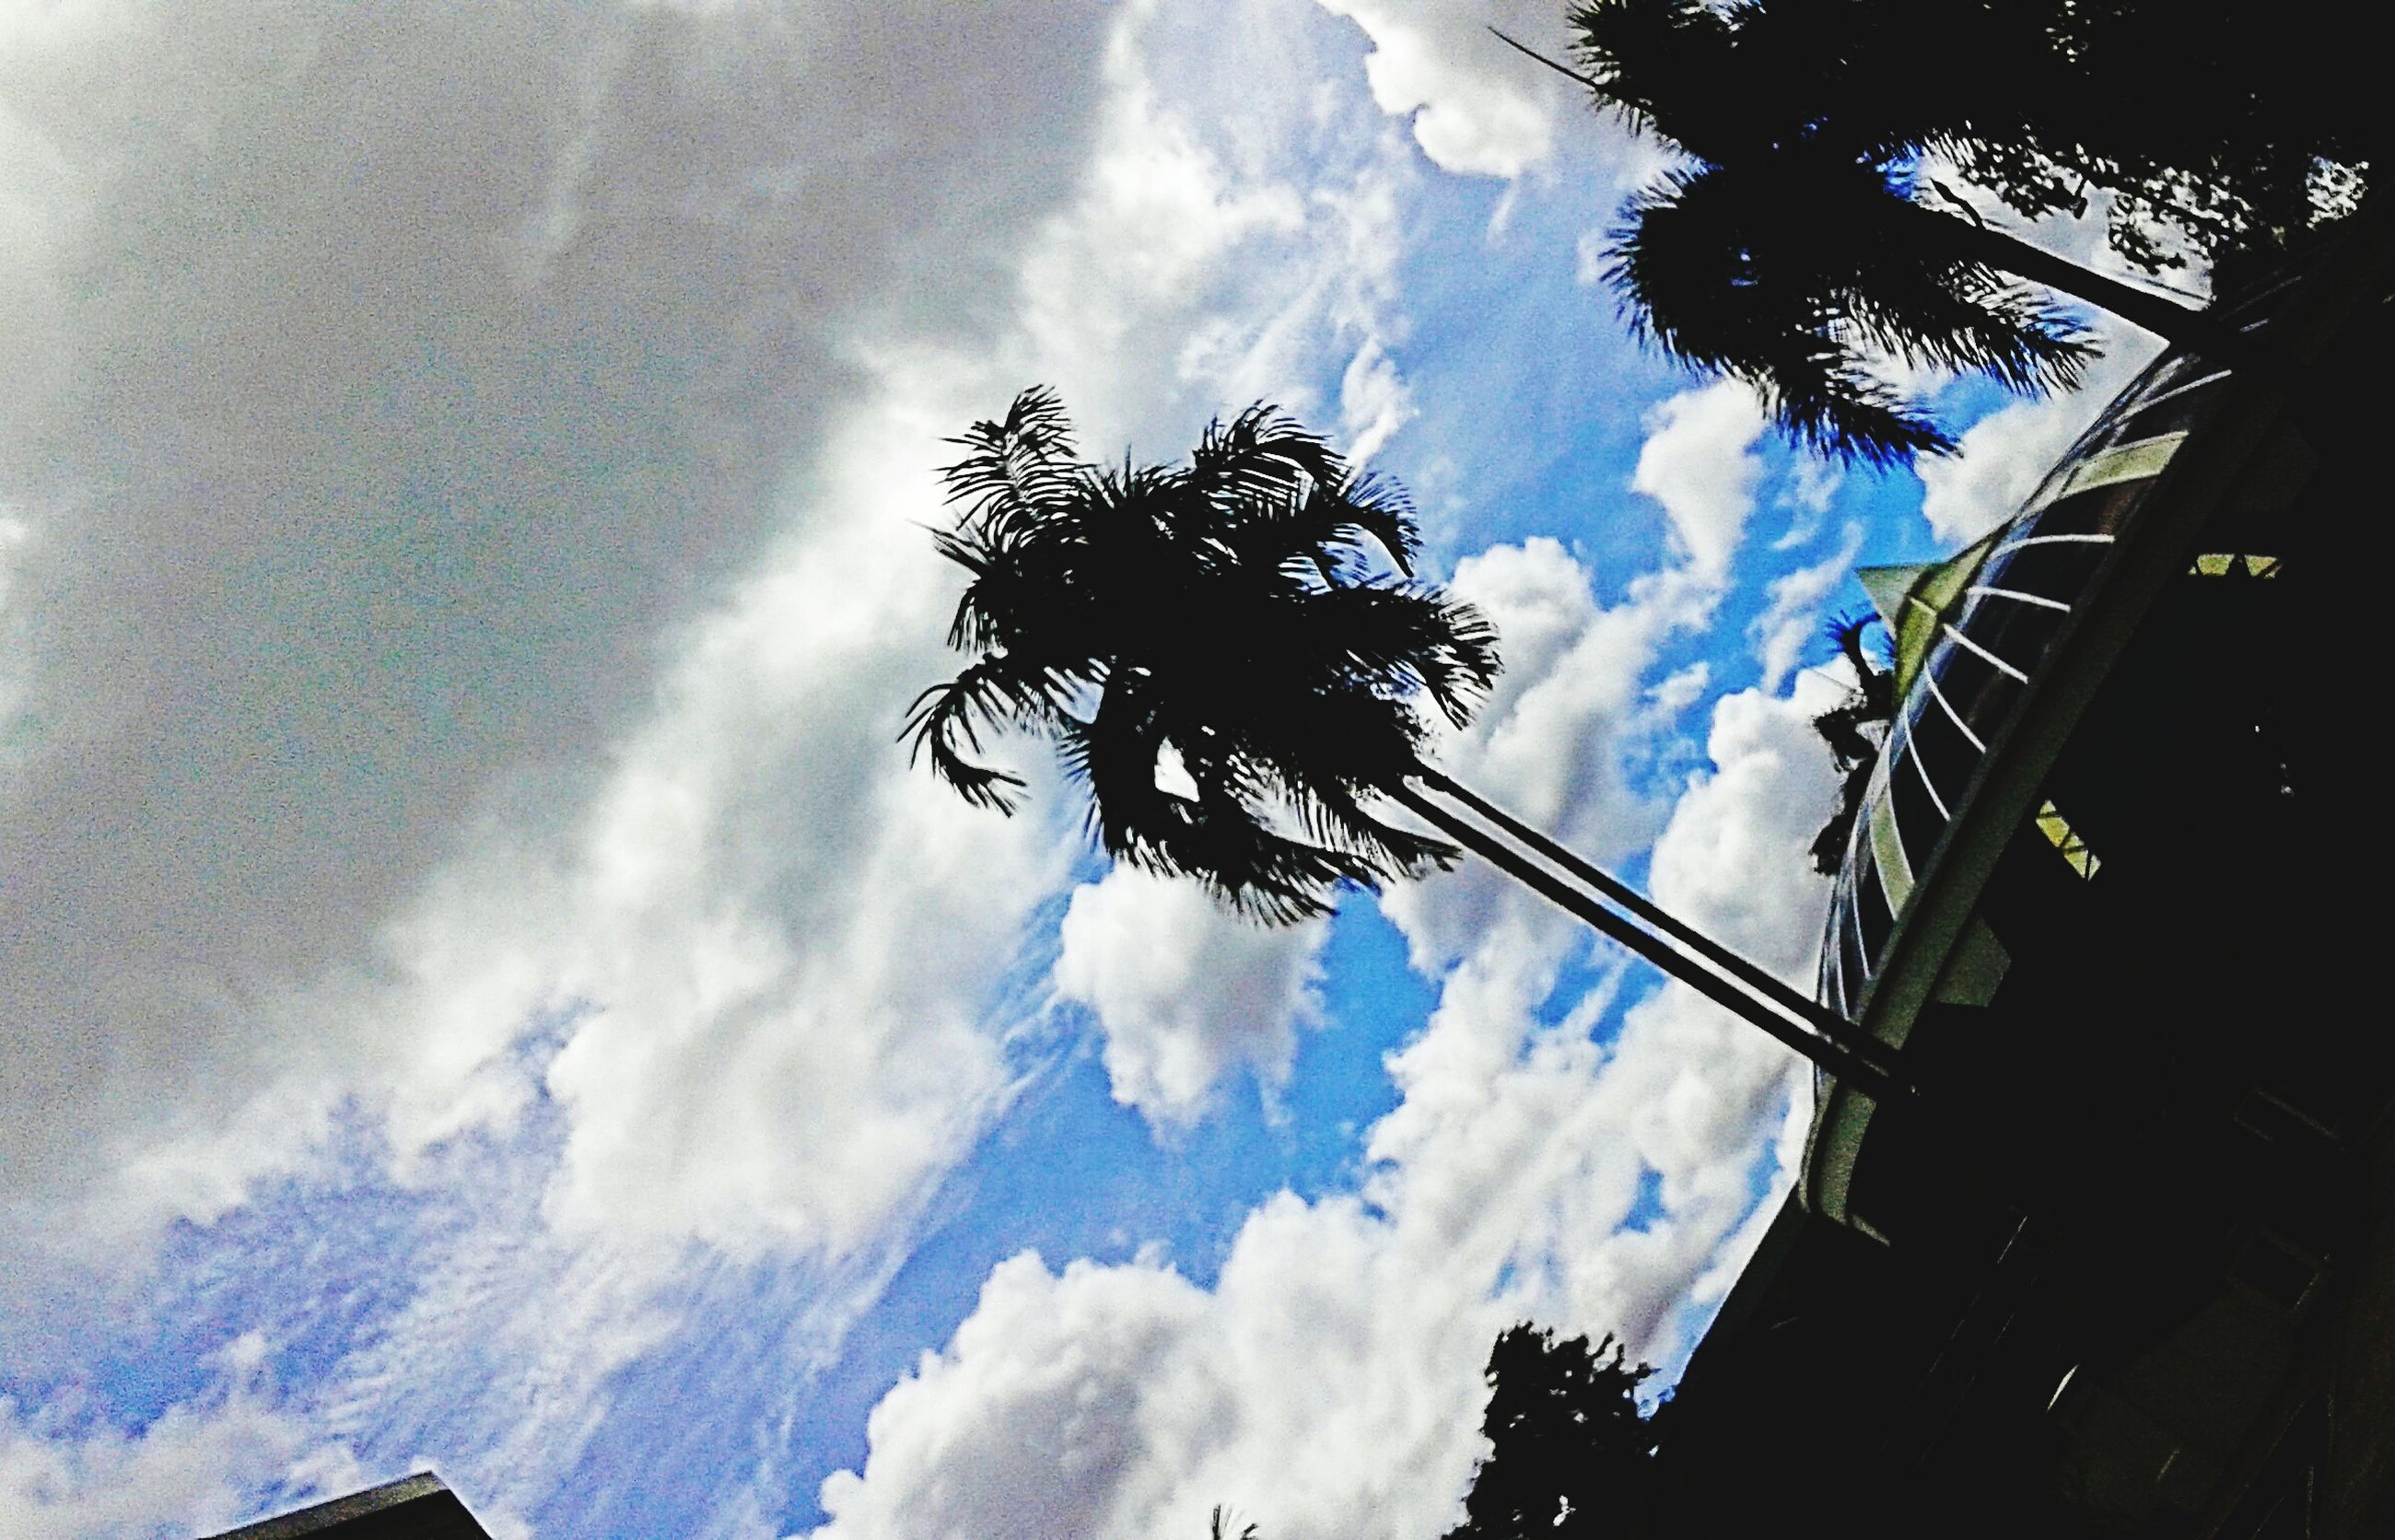 sky, low angle view, cloud - sky, tree, cloudy, cloud, nature, silhouette, weather, tranquility, beauty in nature, day, overcast, branch, no people, outdoors, scenics, growth, tranquil scene, built structure